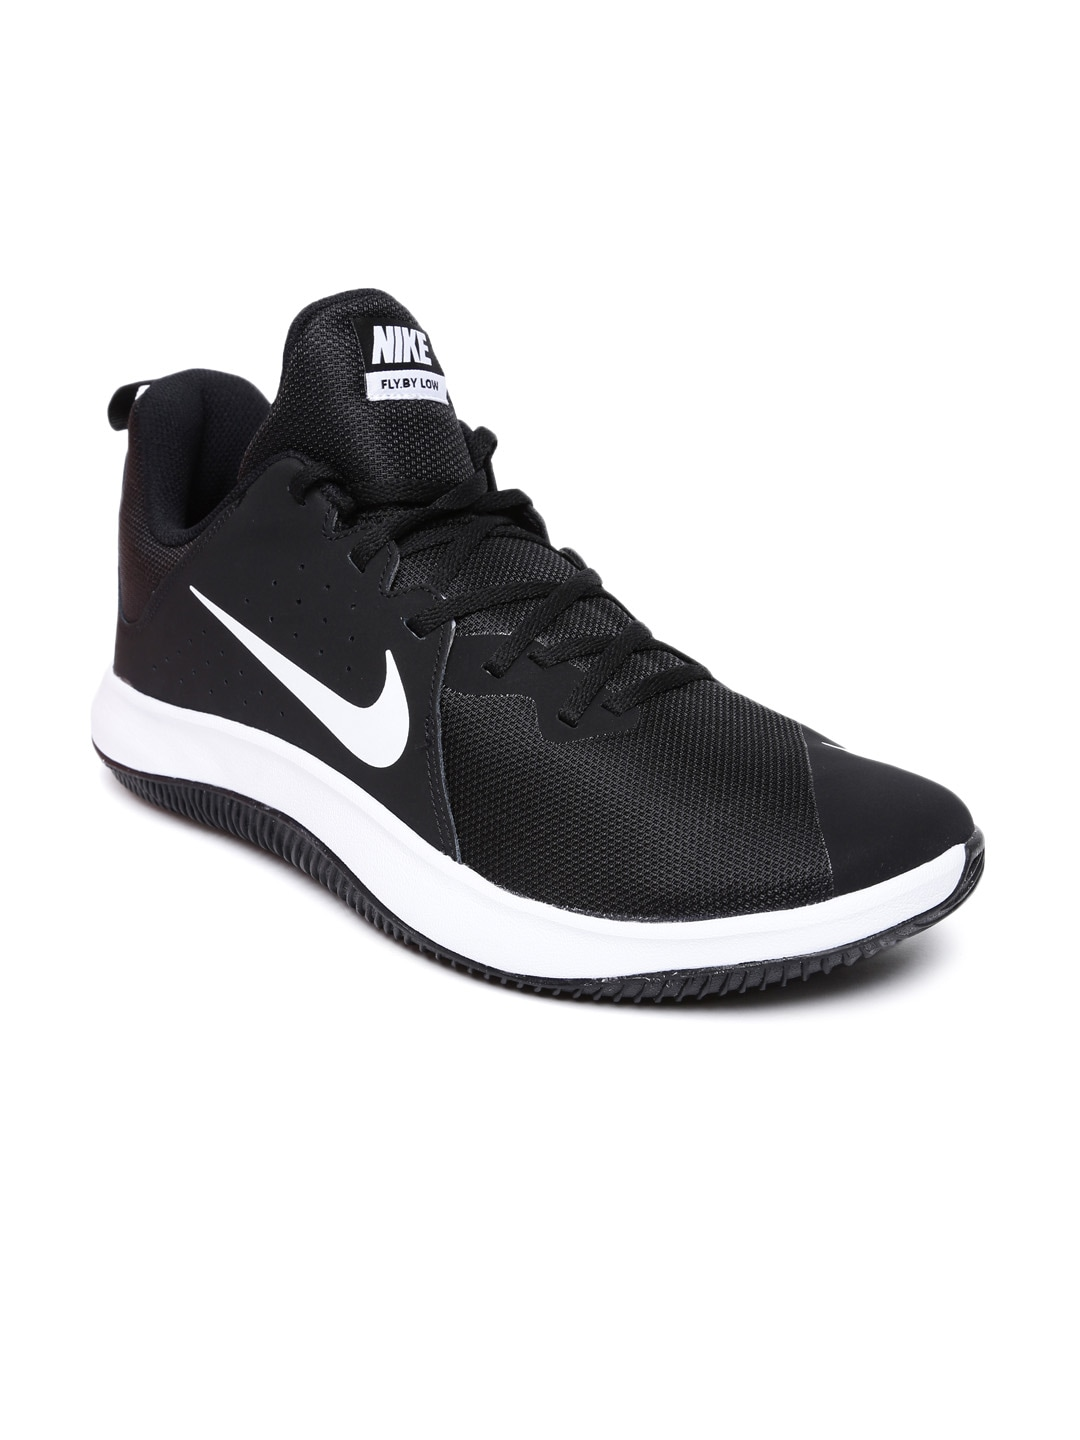 timeless design c724f 66318 Nike Shoes - Buy Nike Shoes for Men, Women   Kids Online   Myntra